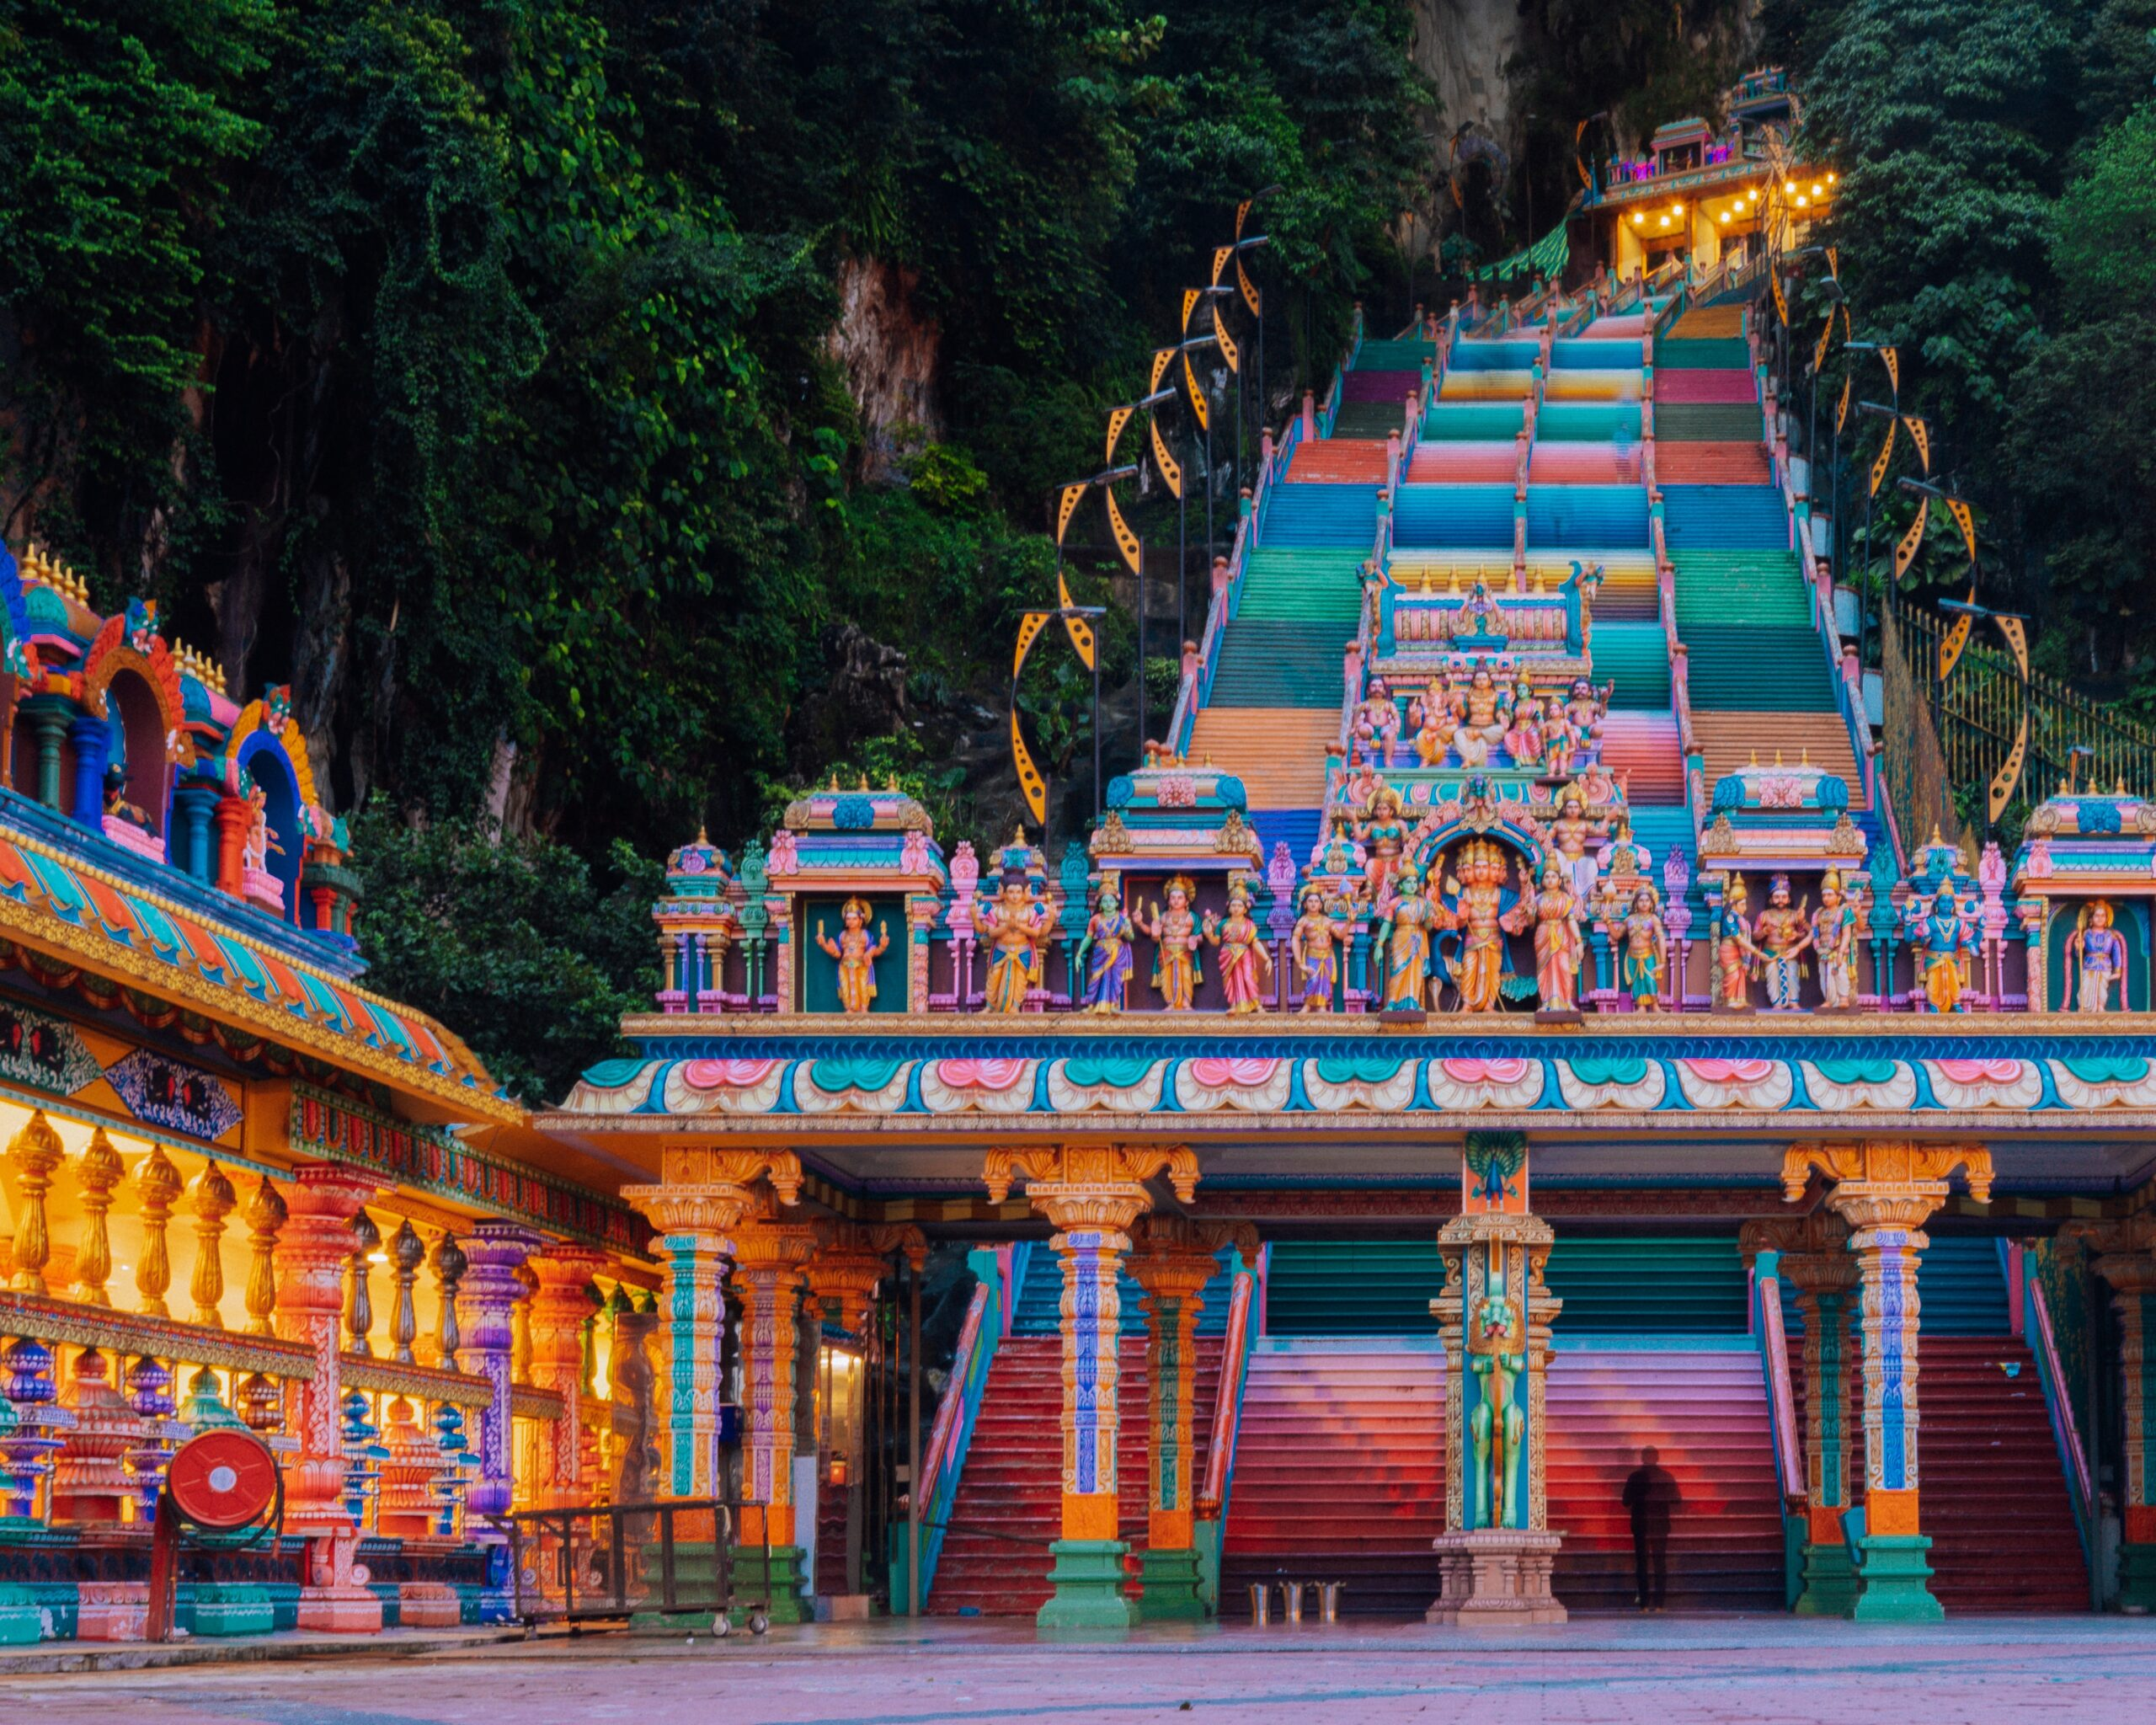 Rainbow staircases of the Batu Caves in the evening.